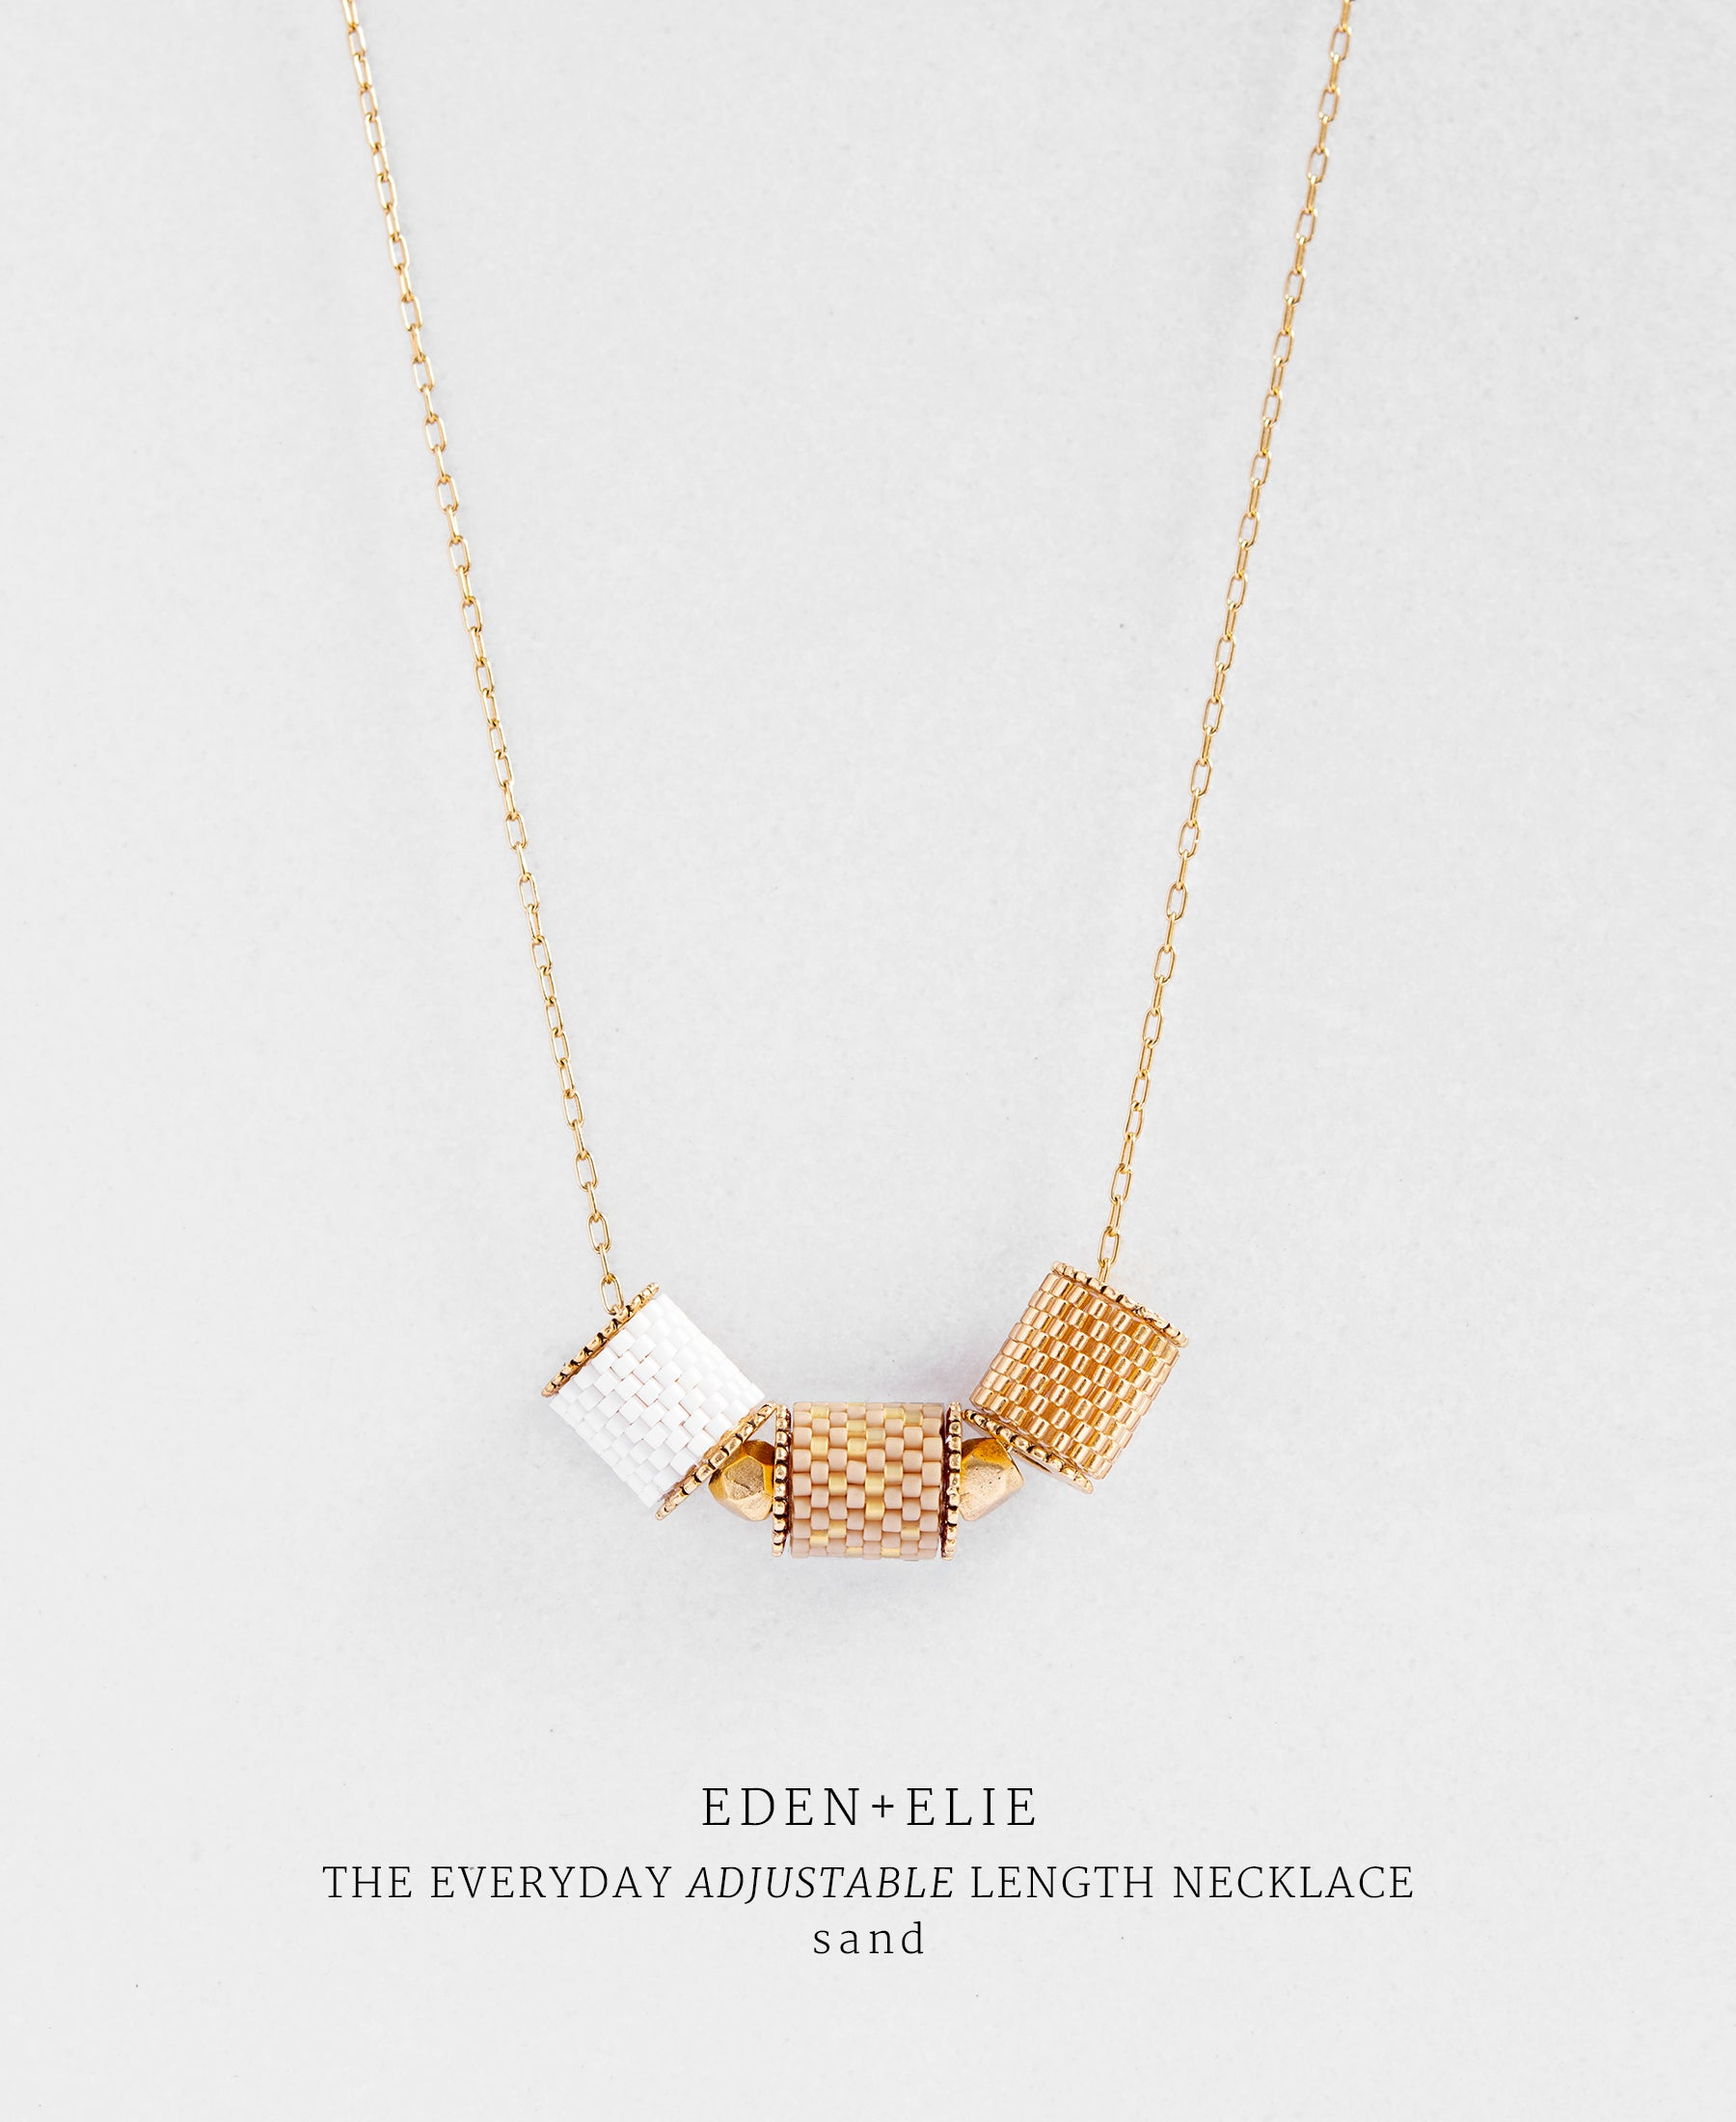 EDEN + ELIE Everyday adjustable length necklace - golden sand